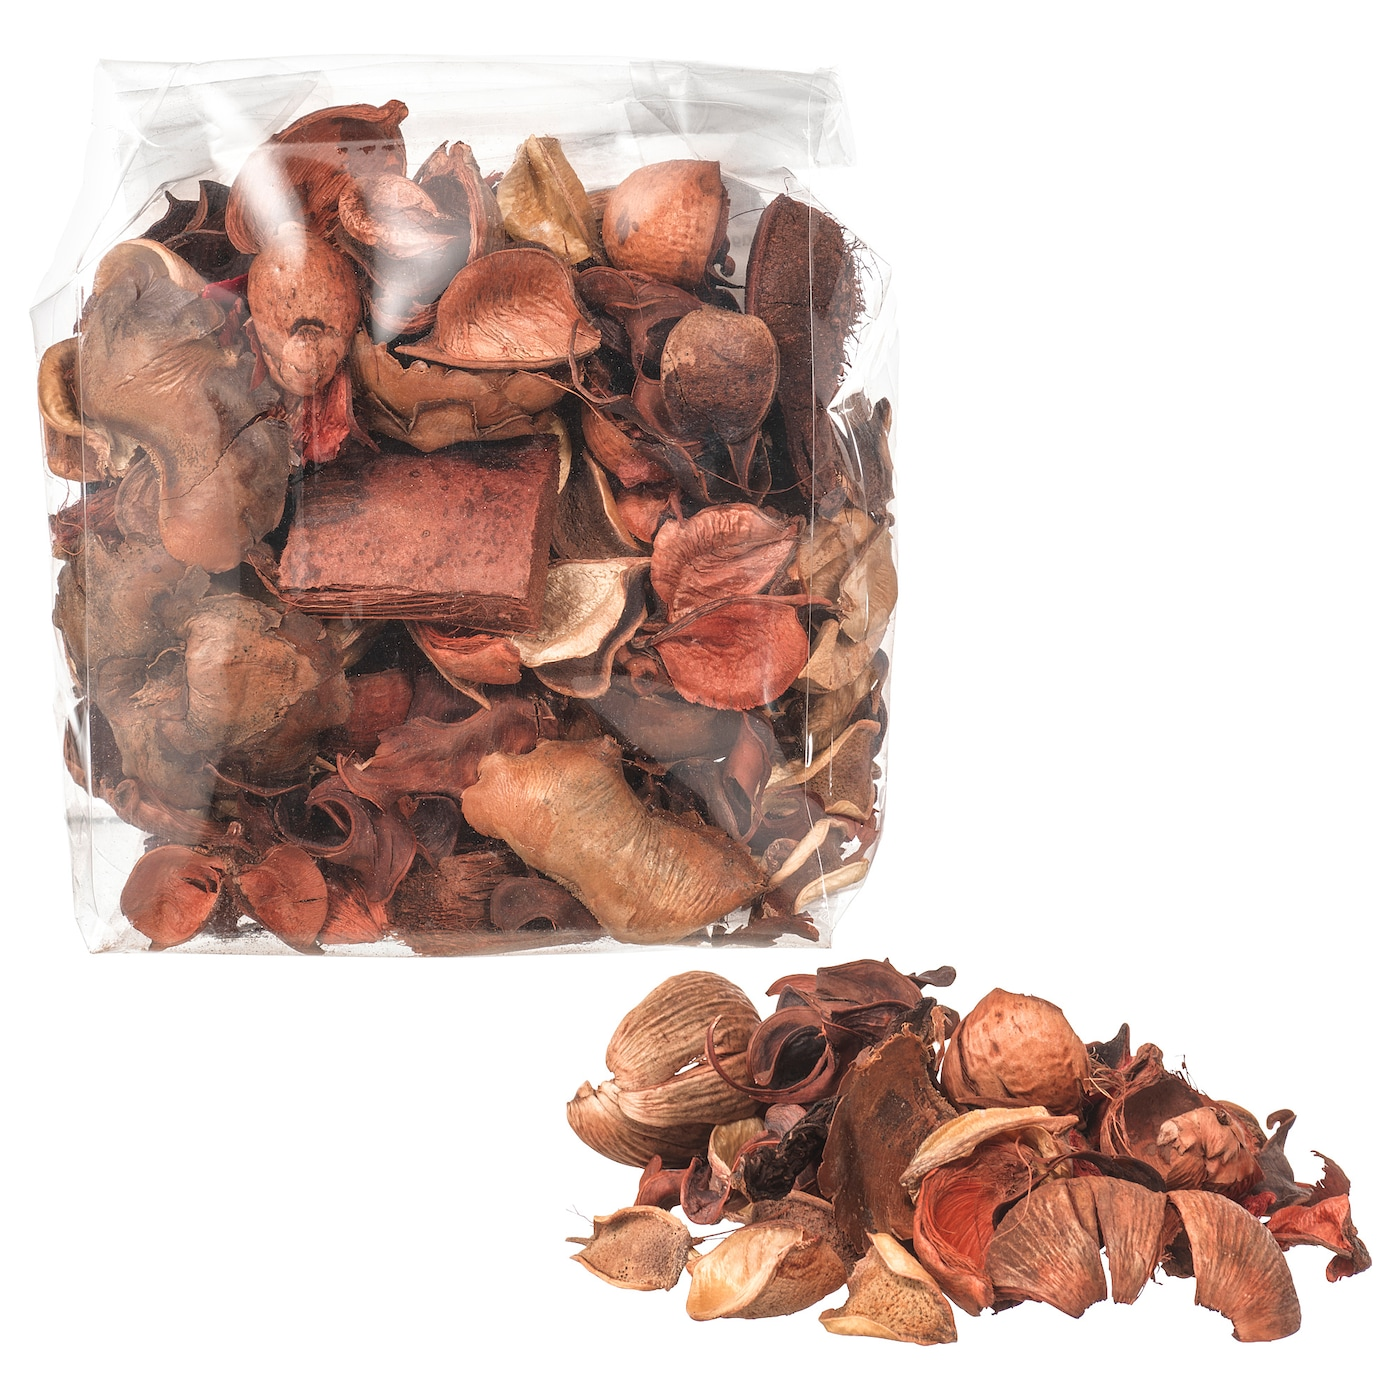 IKEA DOFTA potpourri Spicy scent of nutmeg, cinnamon and vanilla.